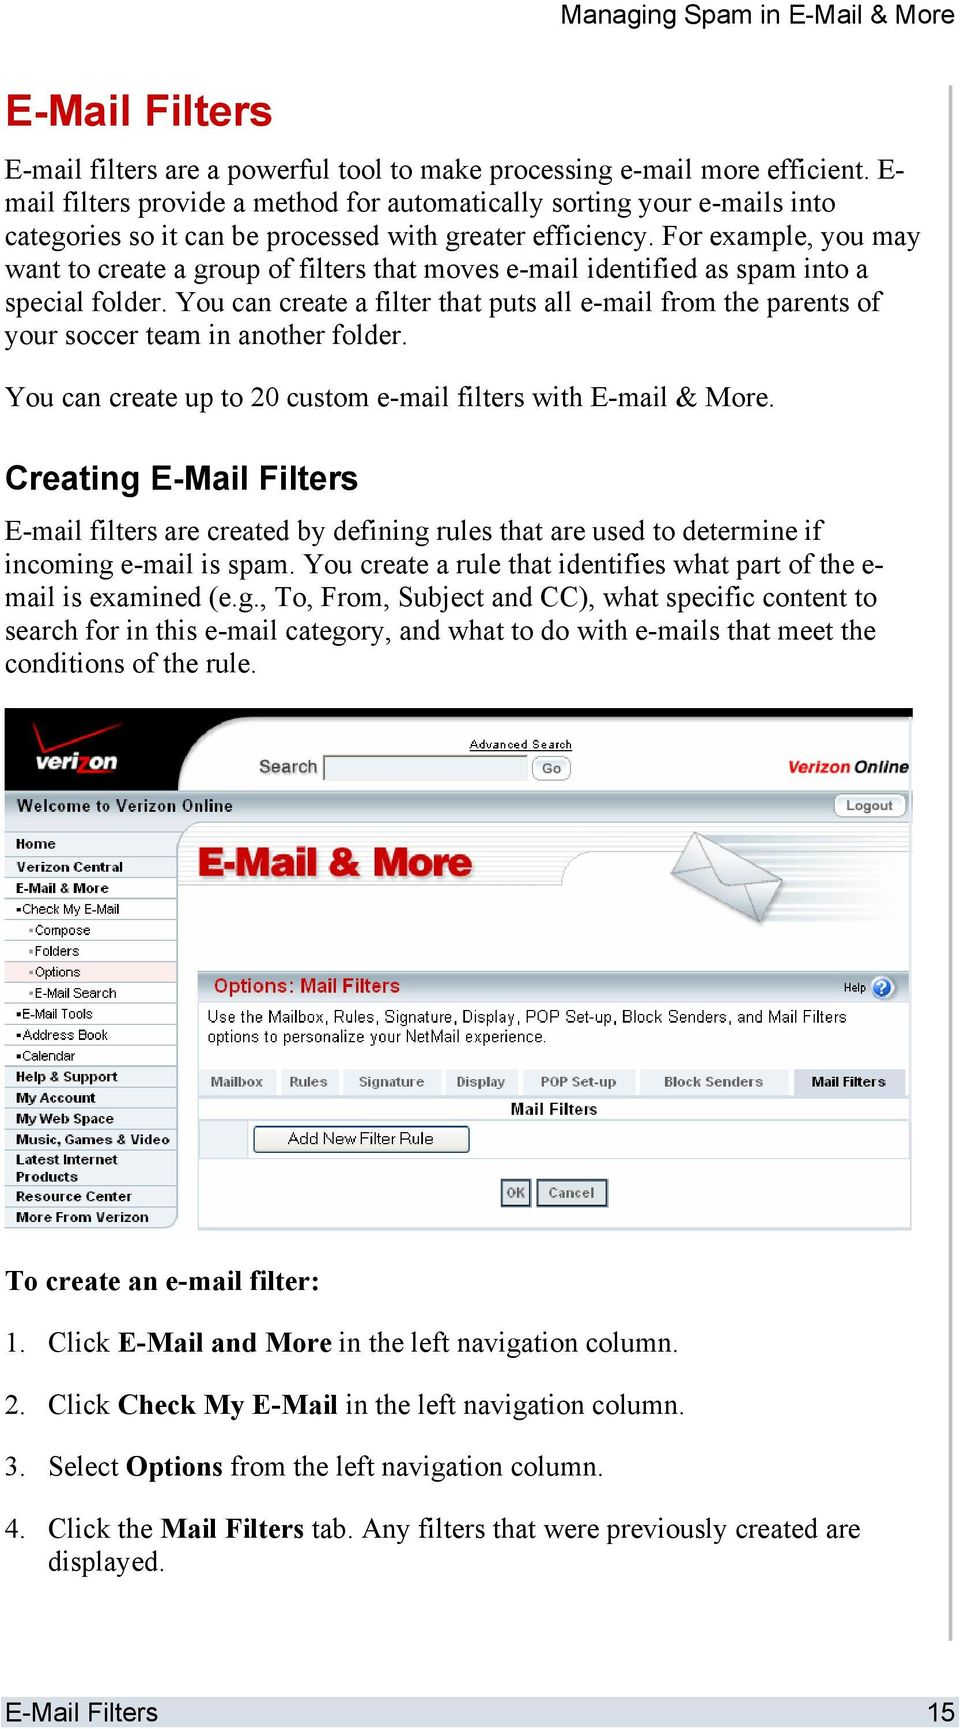 For example, you may want to create a group of filters that moves e-mail identified as spam into a special folder.